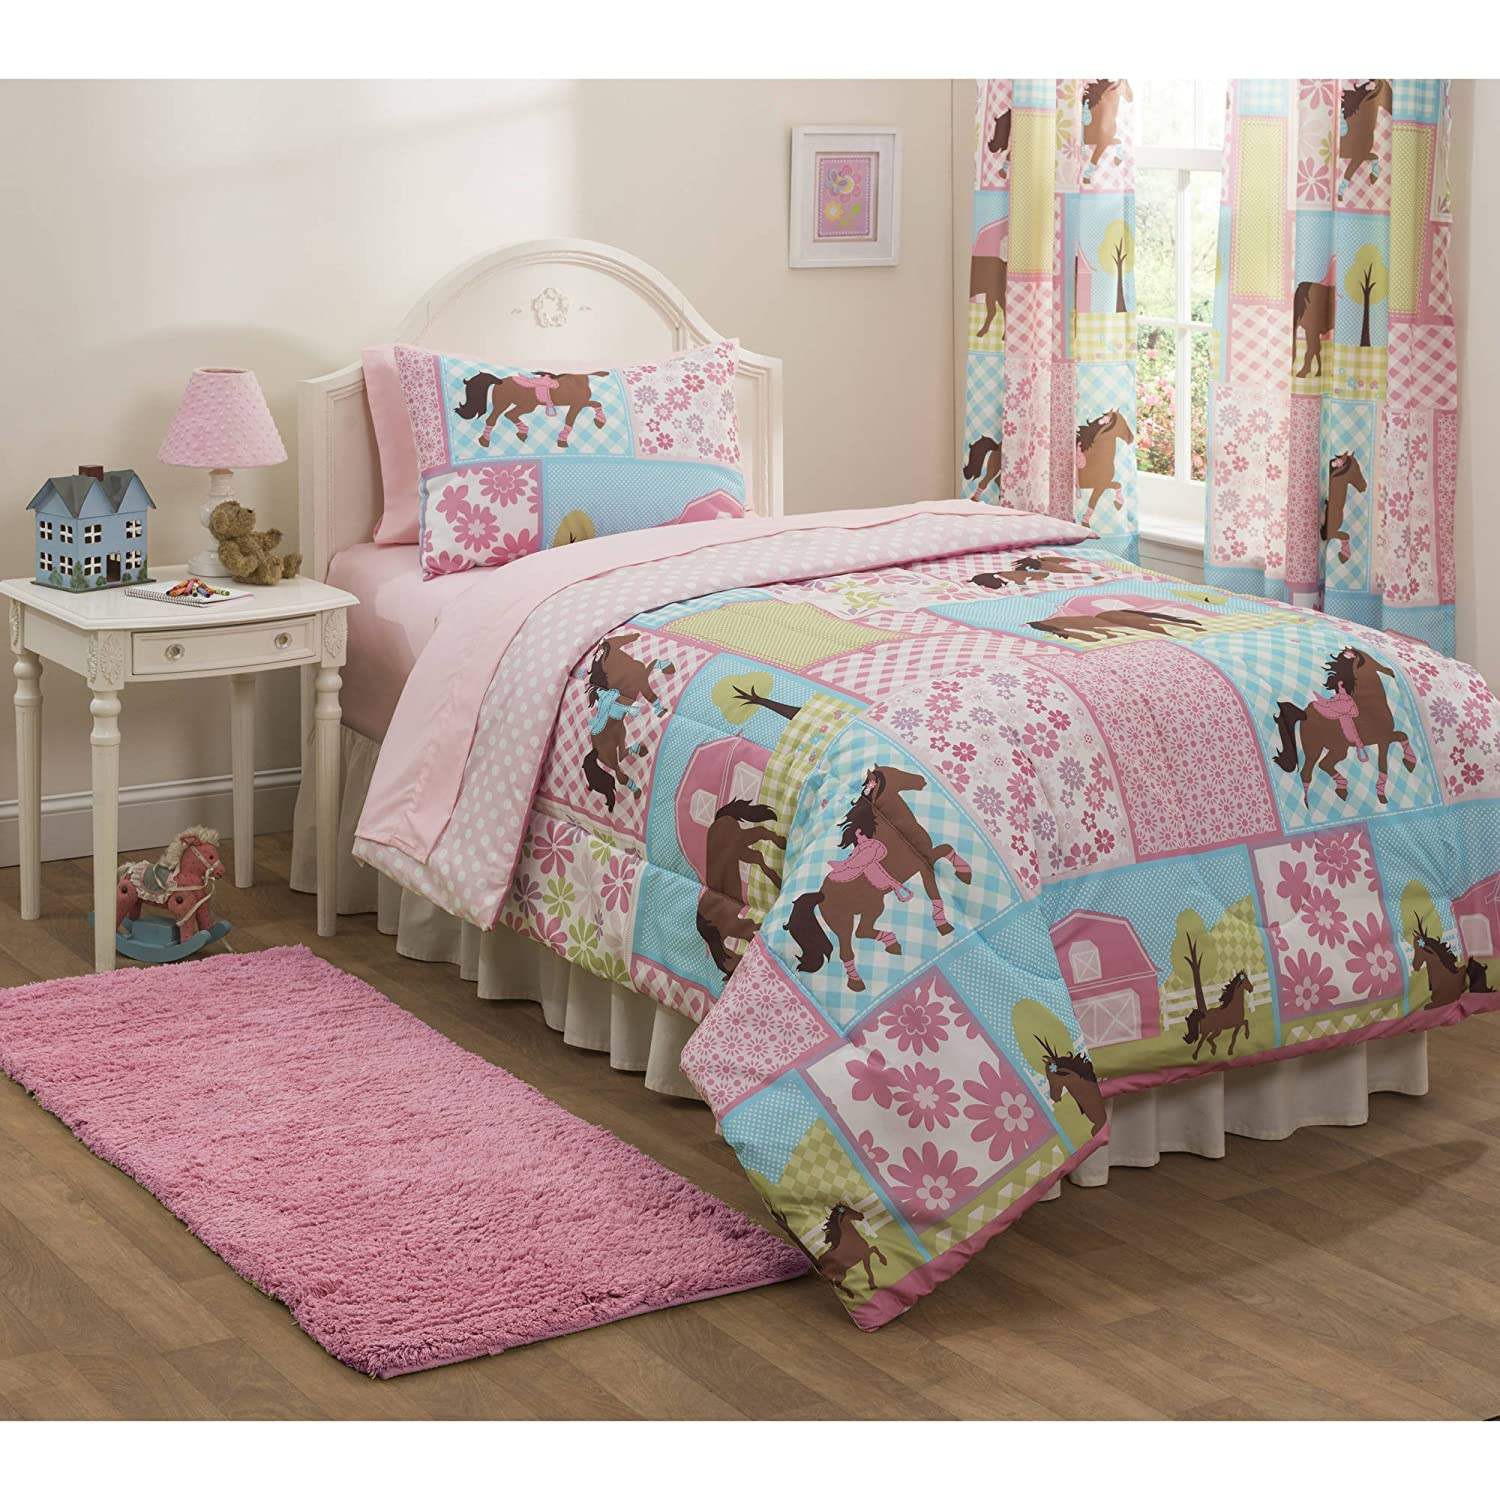 Teenage Room Decorations Cool Mainstays Kids Bedding Sets Ease Bedding With Style